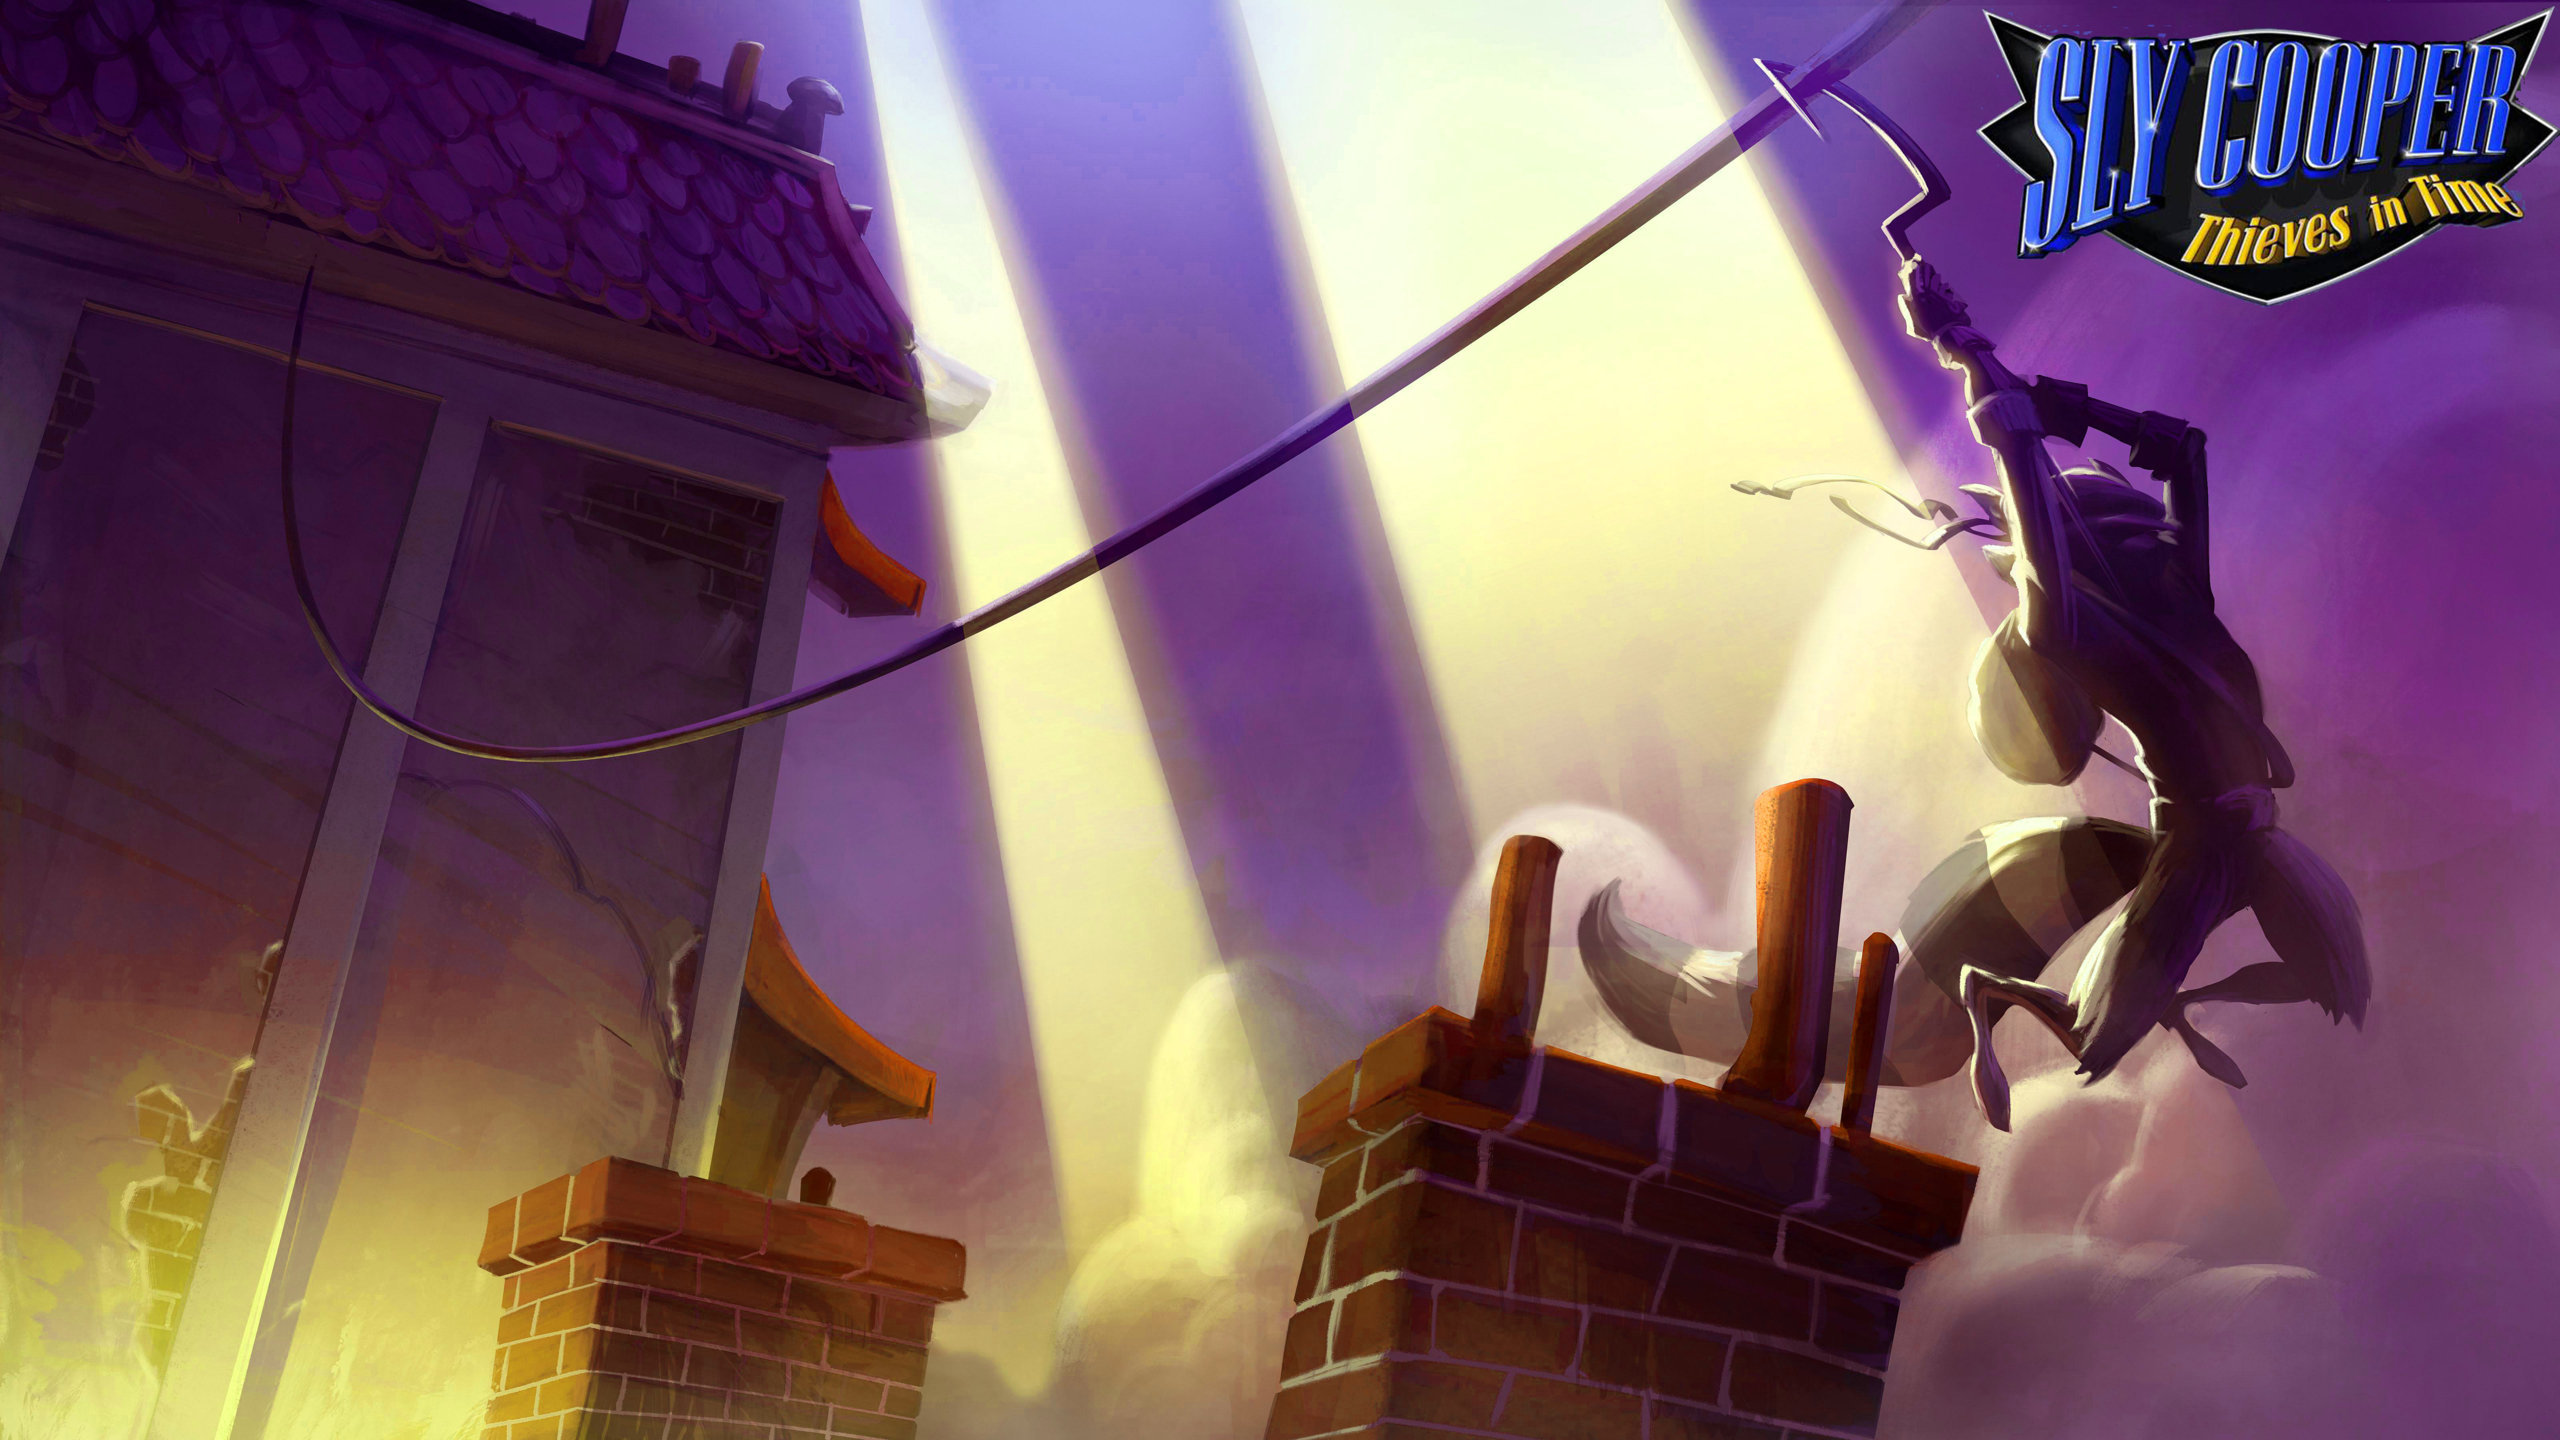 Sly Cooper Thieves In Time Wallpaper 25601440 21892 HD Wallpaper 2560x1440